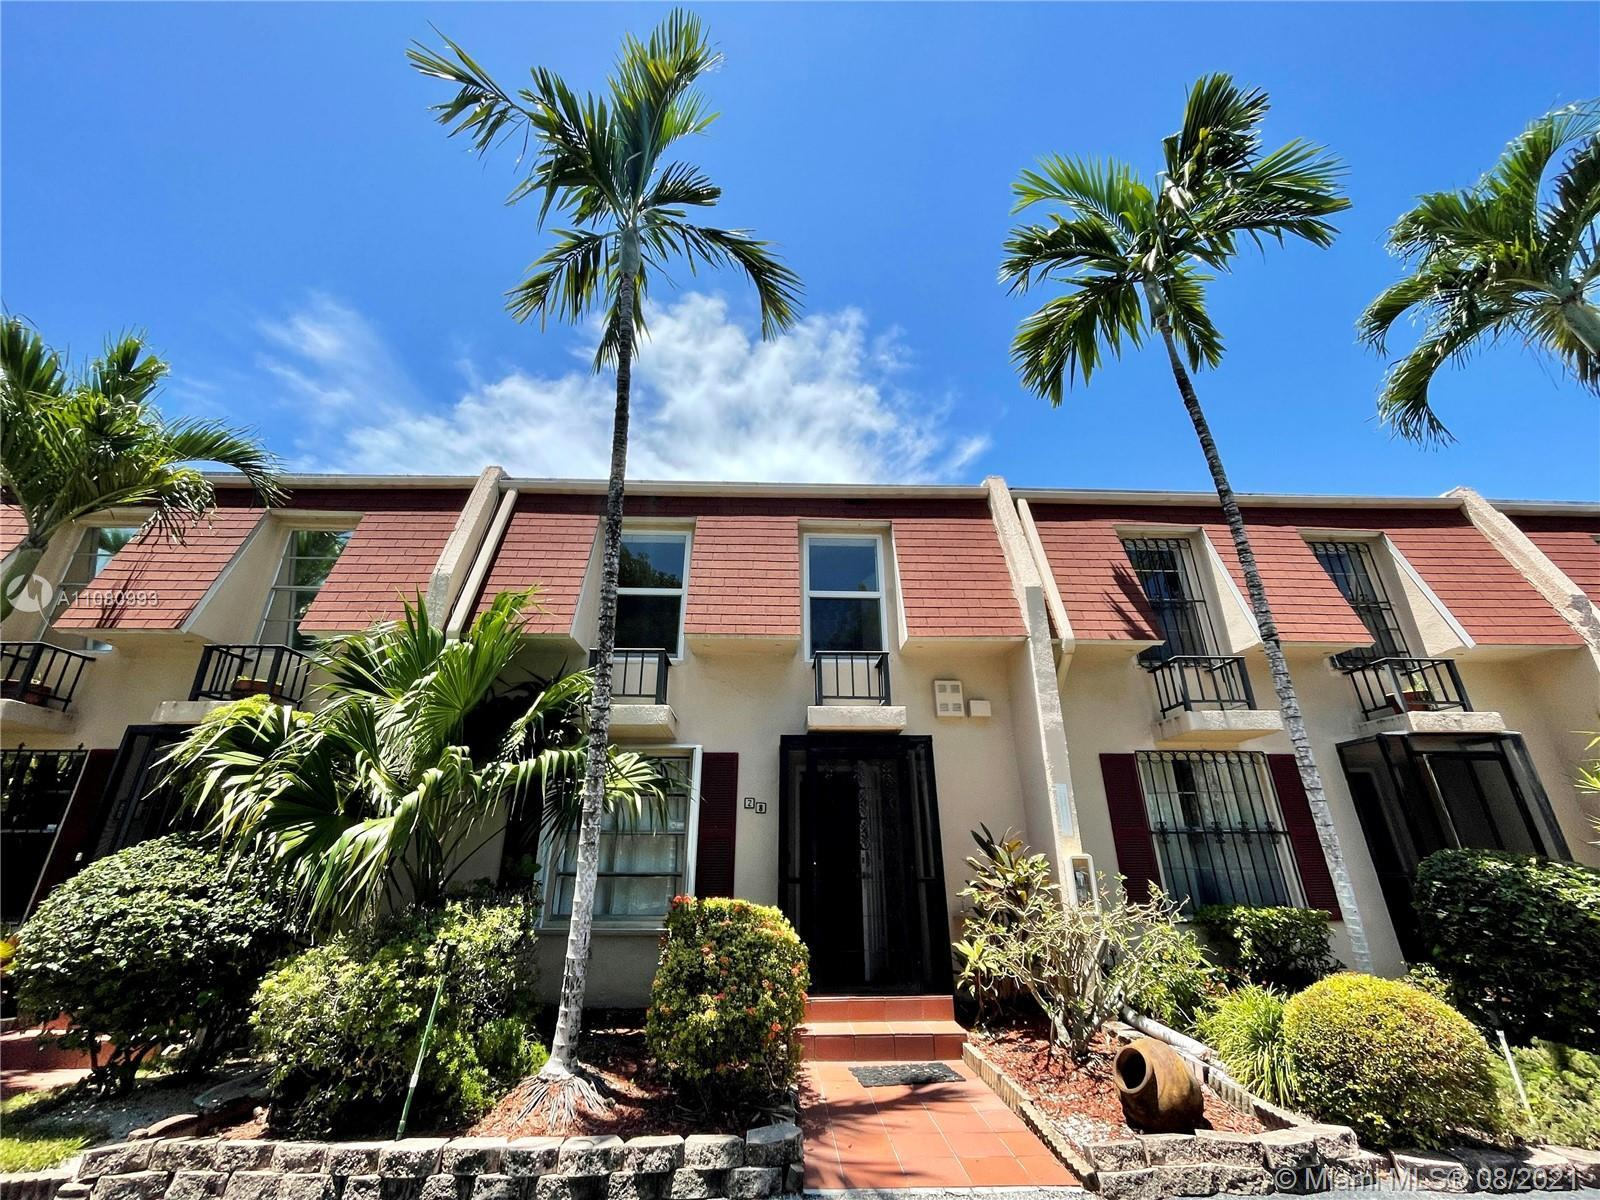 Rare, move in ready and upgraded townhome in Hallandale Beach. Spacious split floorplan with tile on